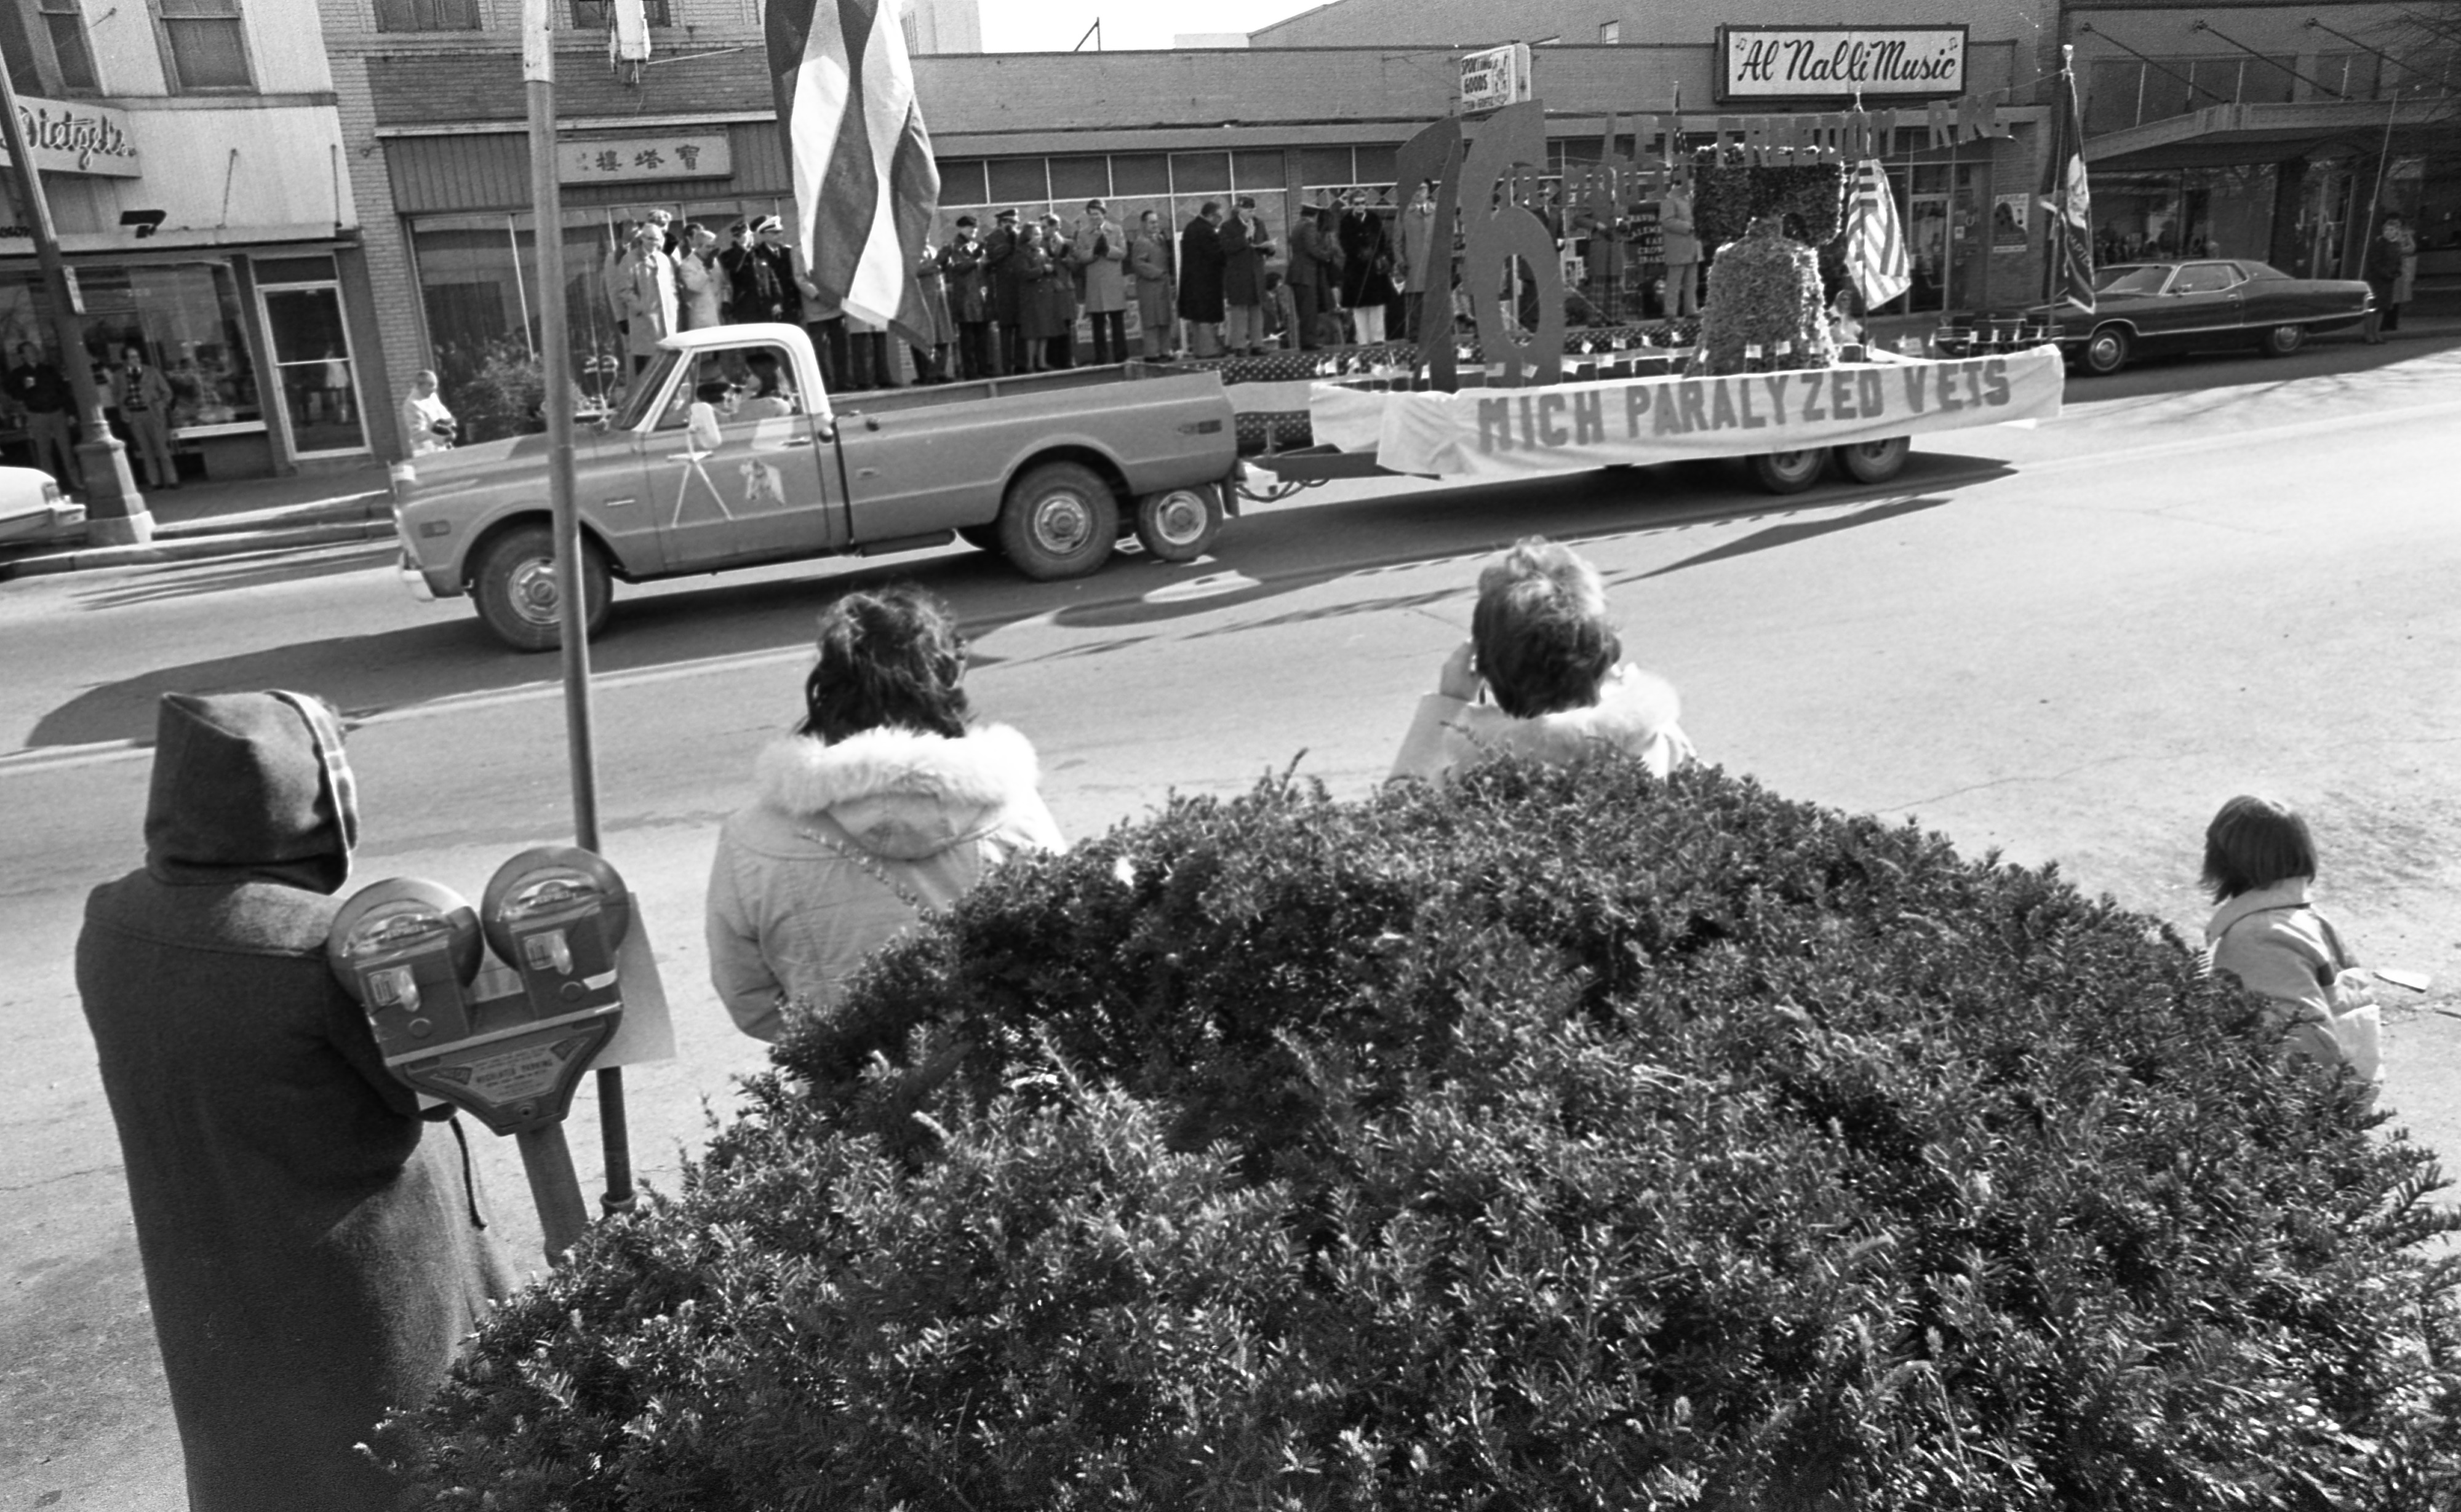 Michigan Paralyzed Vets In The Ann Arbor Veterans Day Parade - November 11, 1976 image